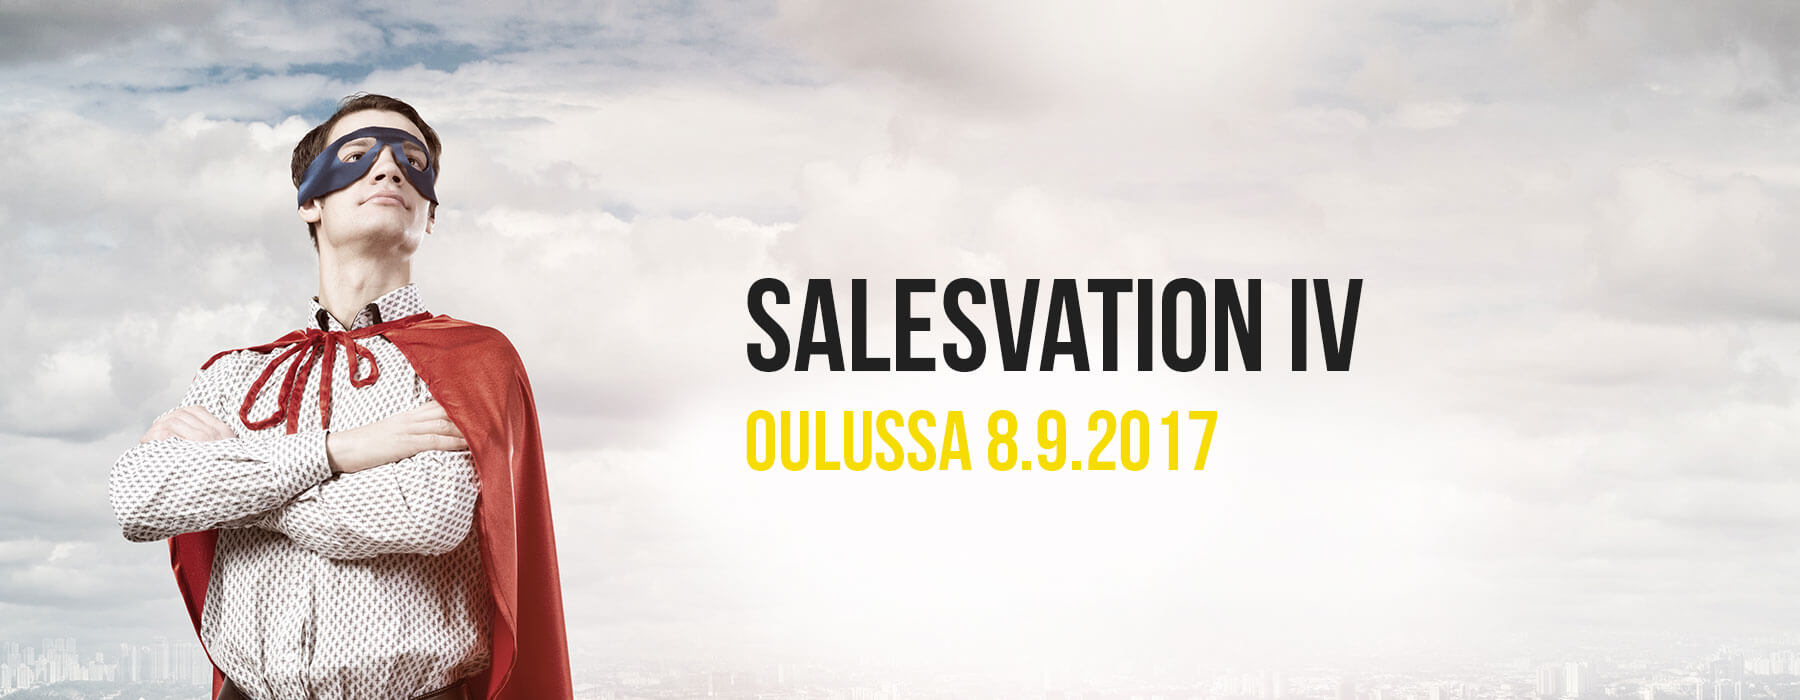 salesvation-iv-iso